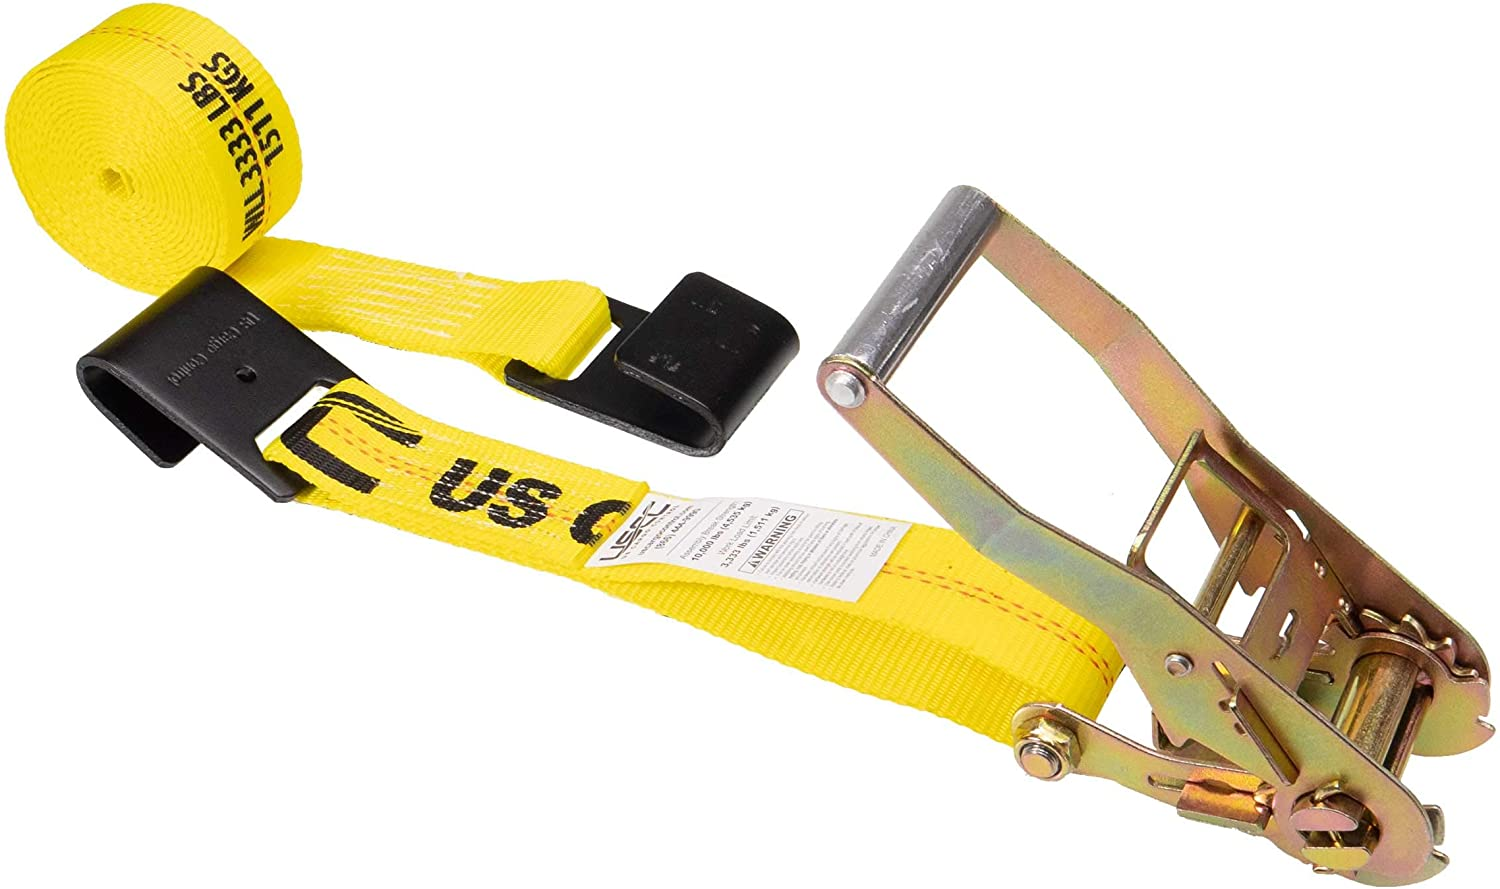 US Cargo Control 2 Inch x 18 Foot Yellow Ratchet Strap with Black Flat Hooks